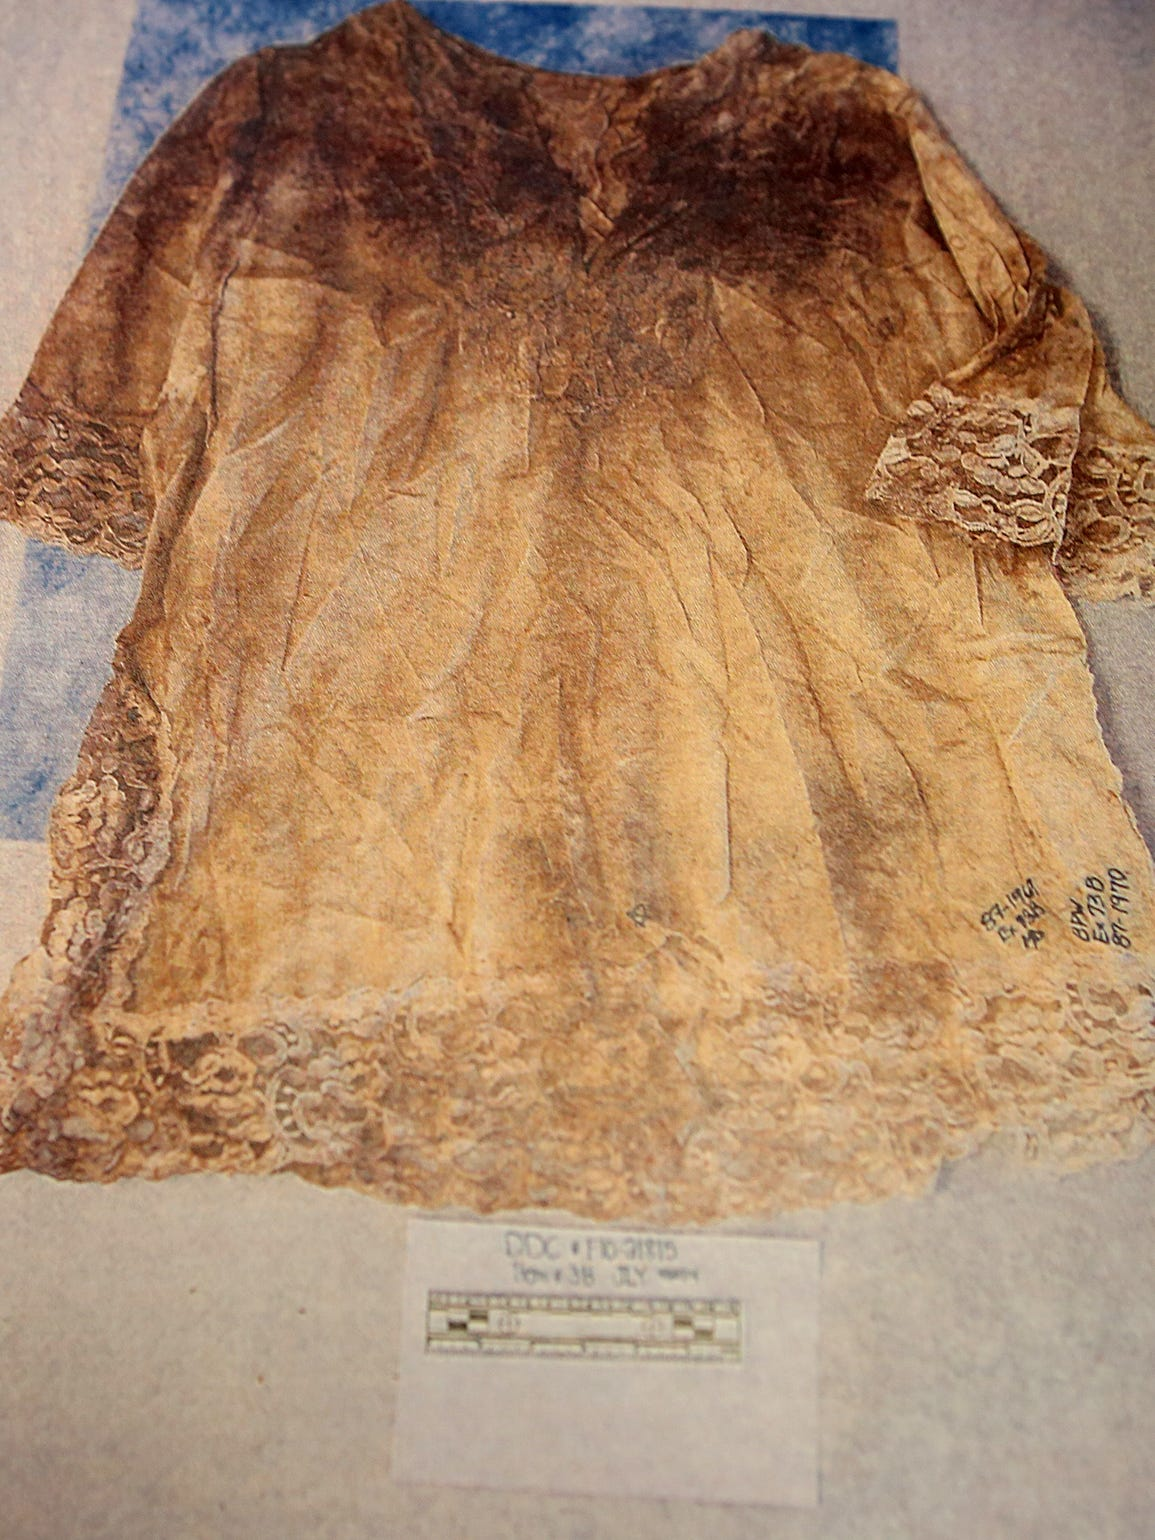 The nightgown Retha Welch wore when she was beaten